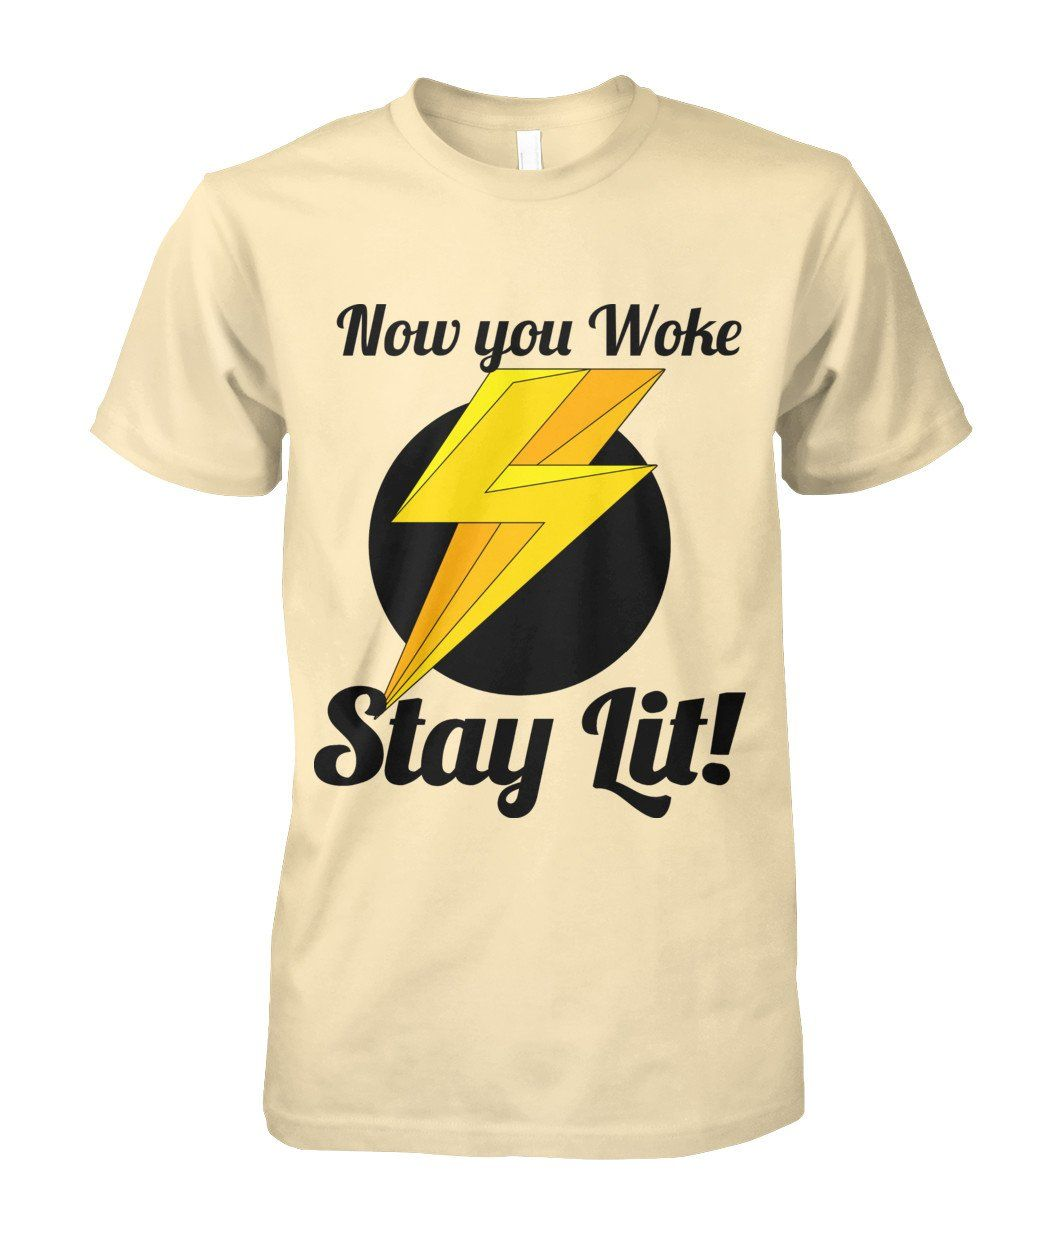 Stay Lit Mens tops, Cotton tee, Sleeves